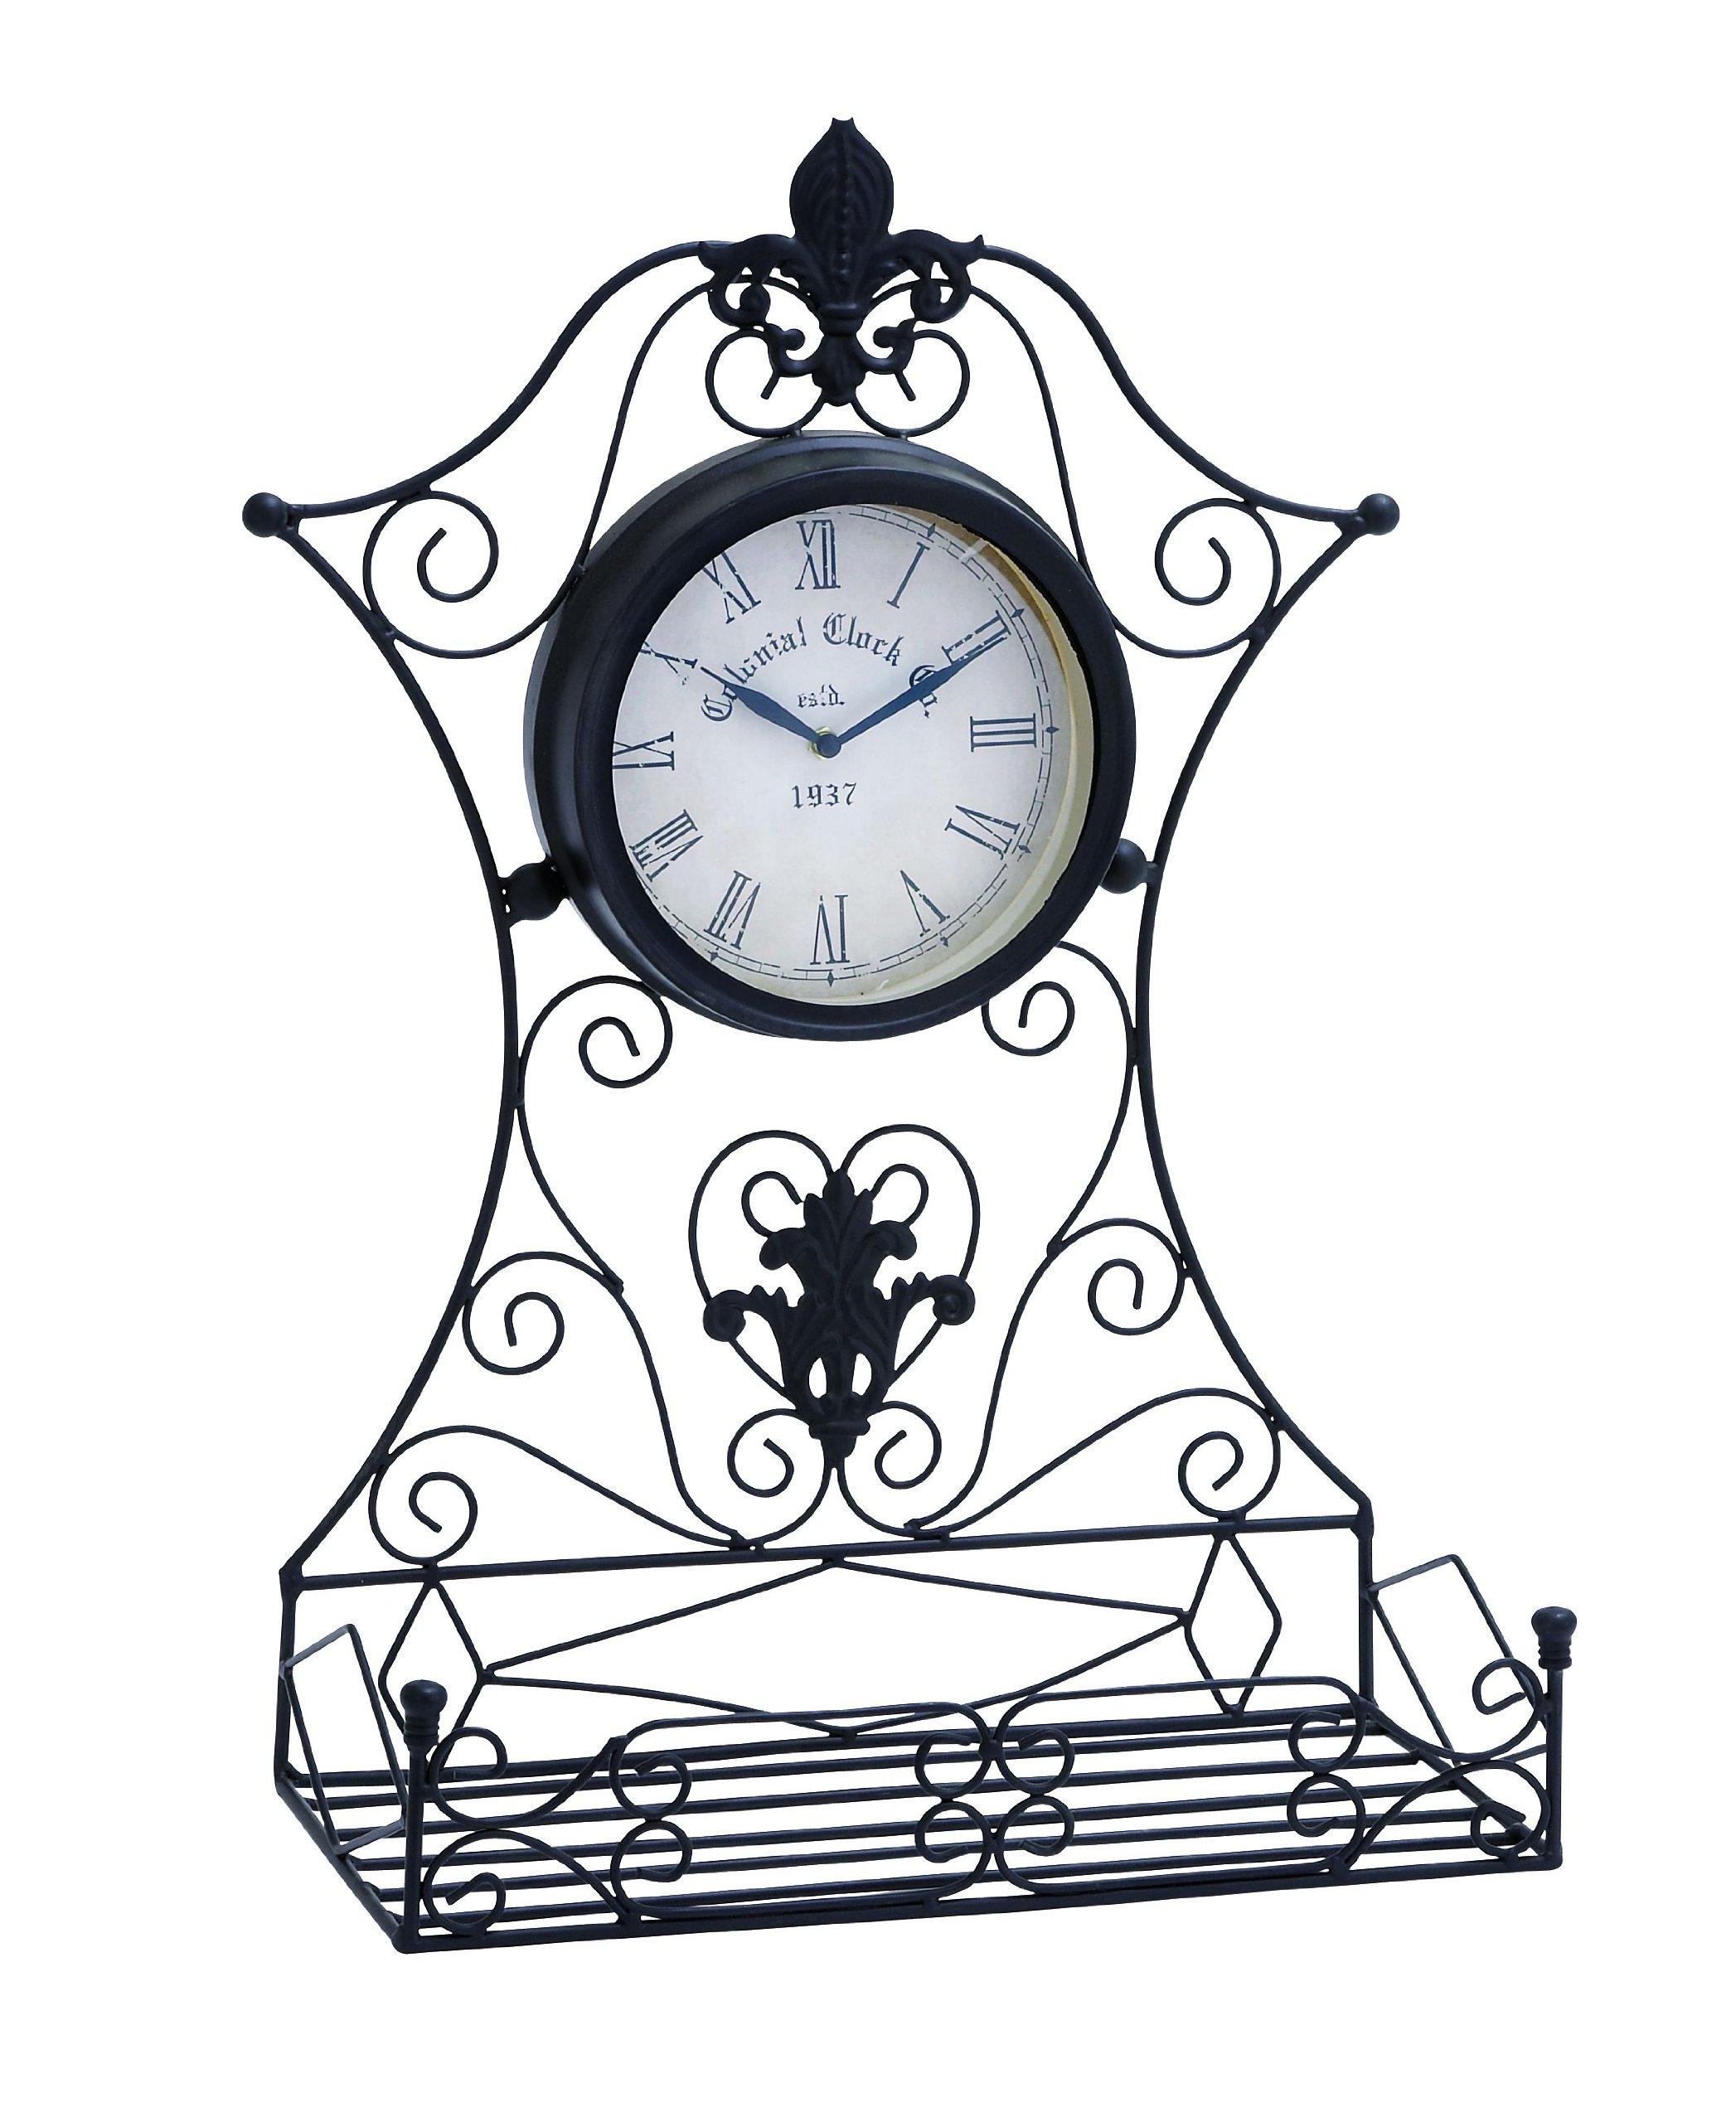 Deco 79 35422 Metal Outdoor Clock, 16 by 23-Inch